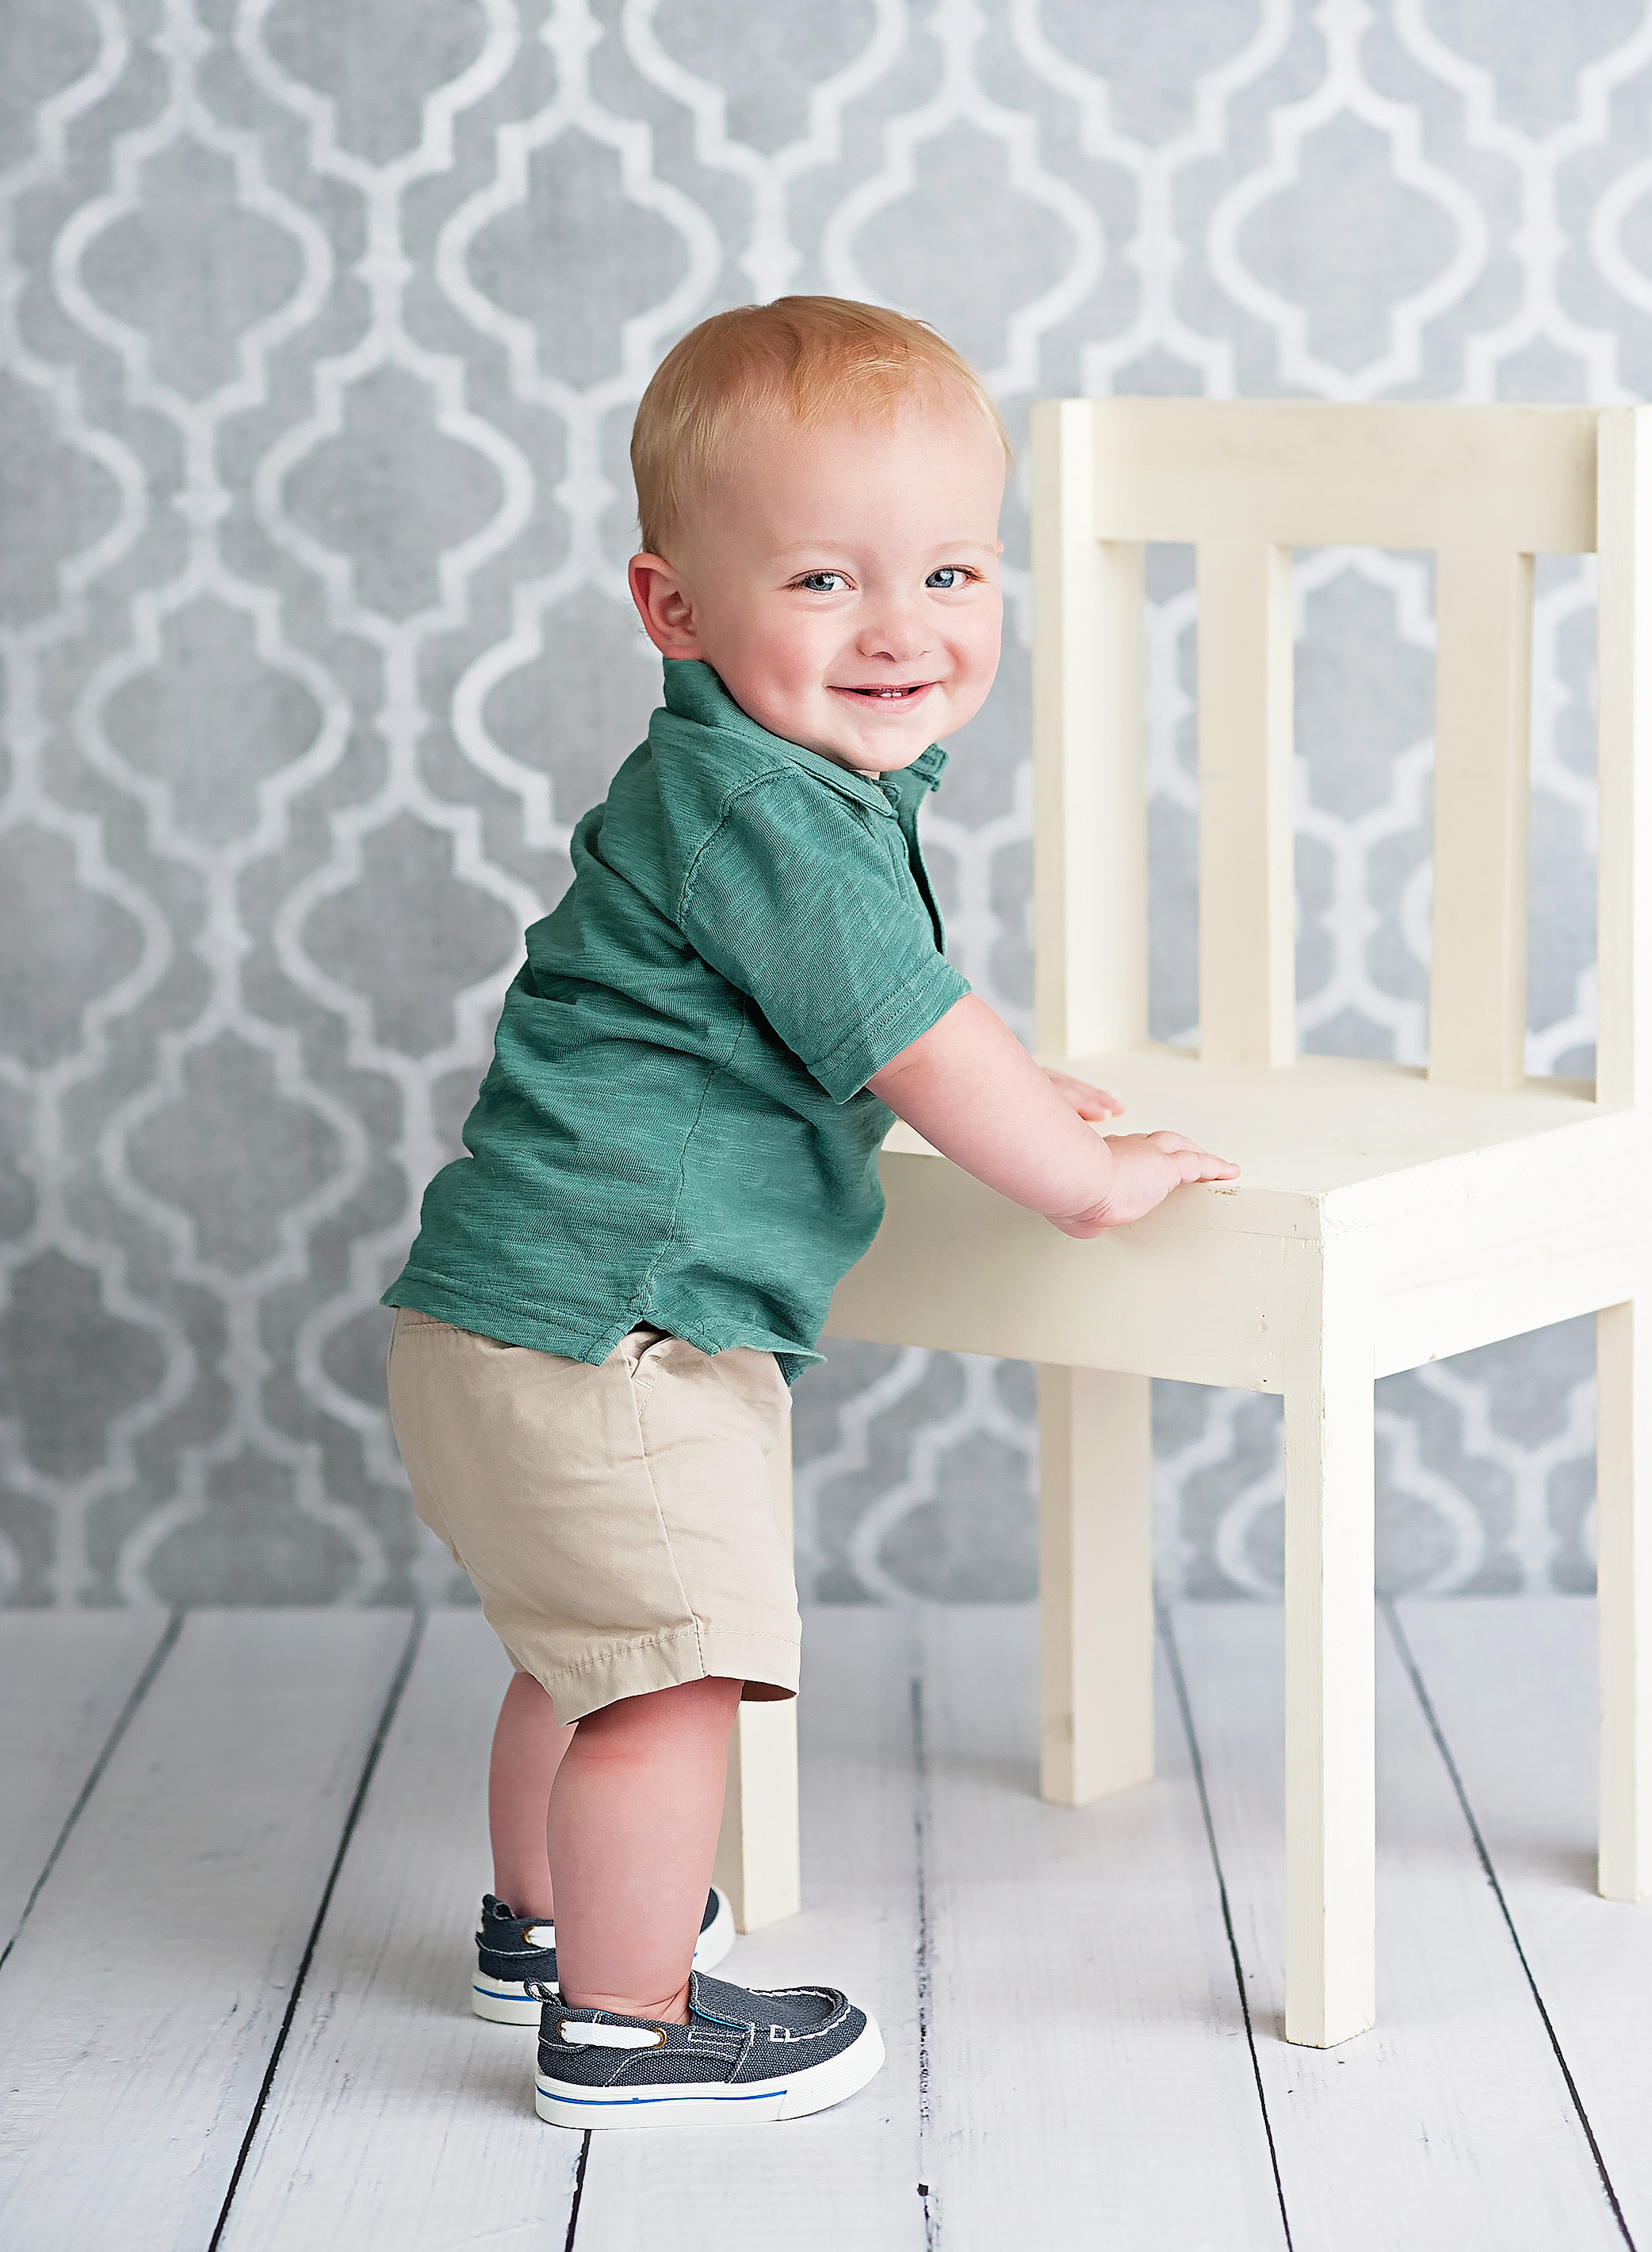 one year olf boy standing by white chair